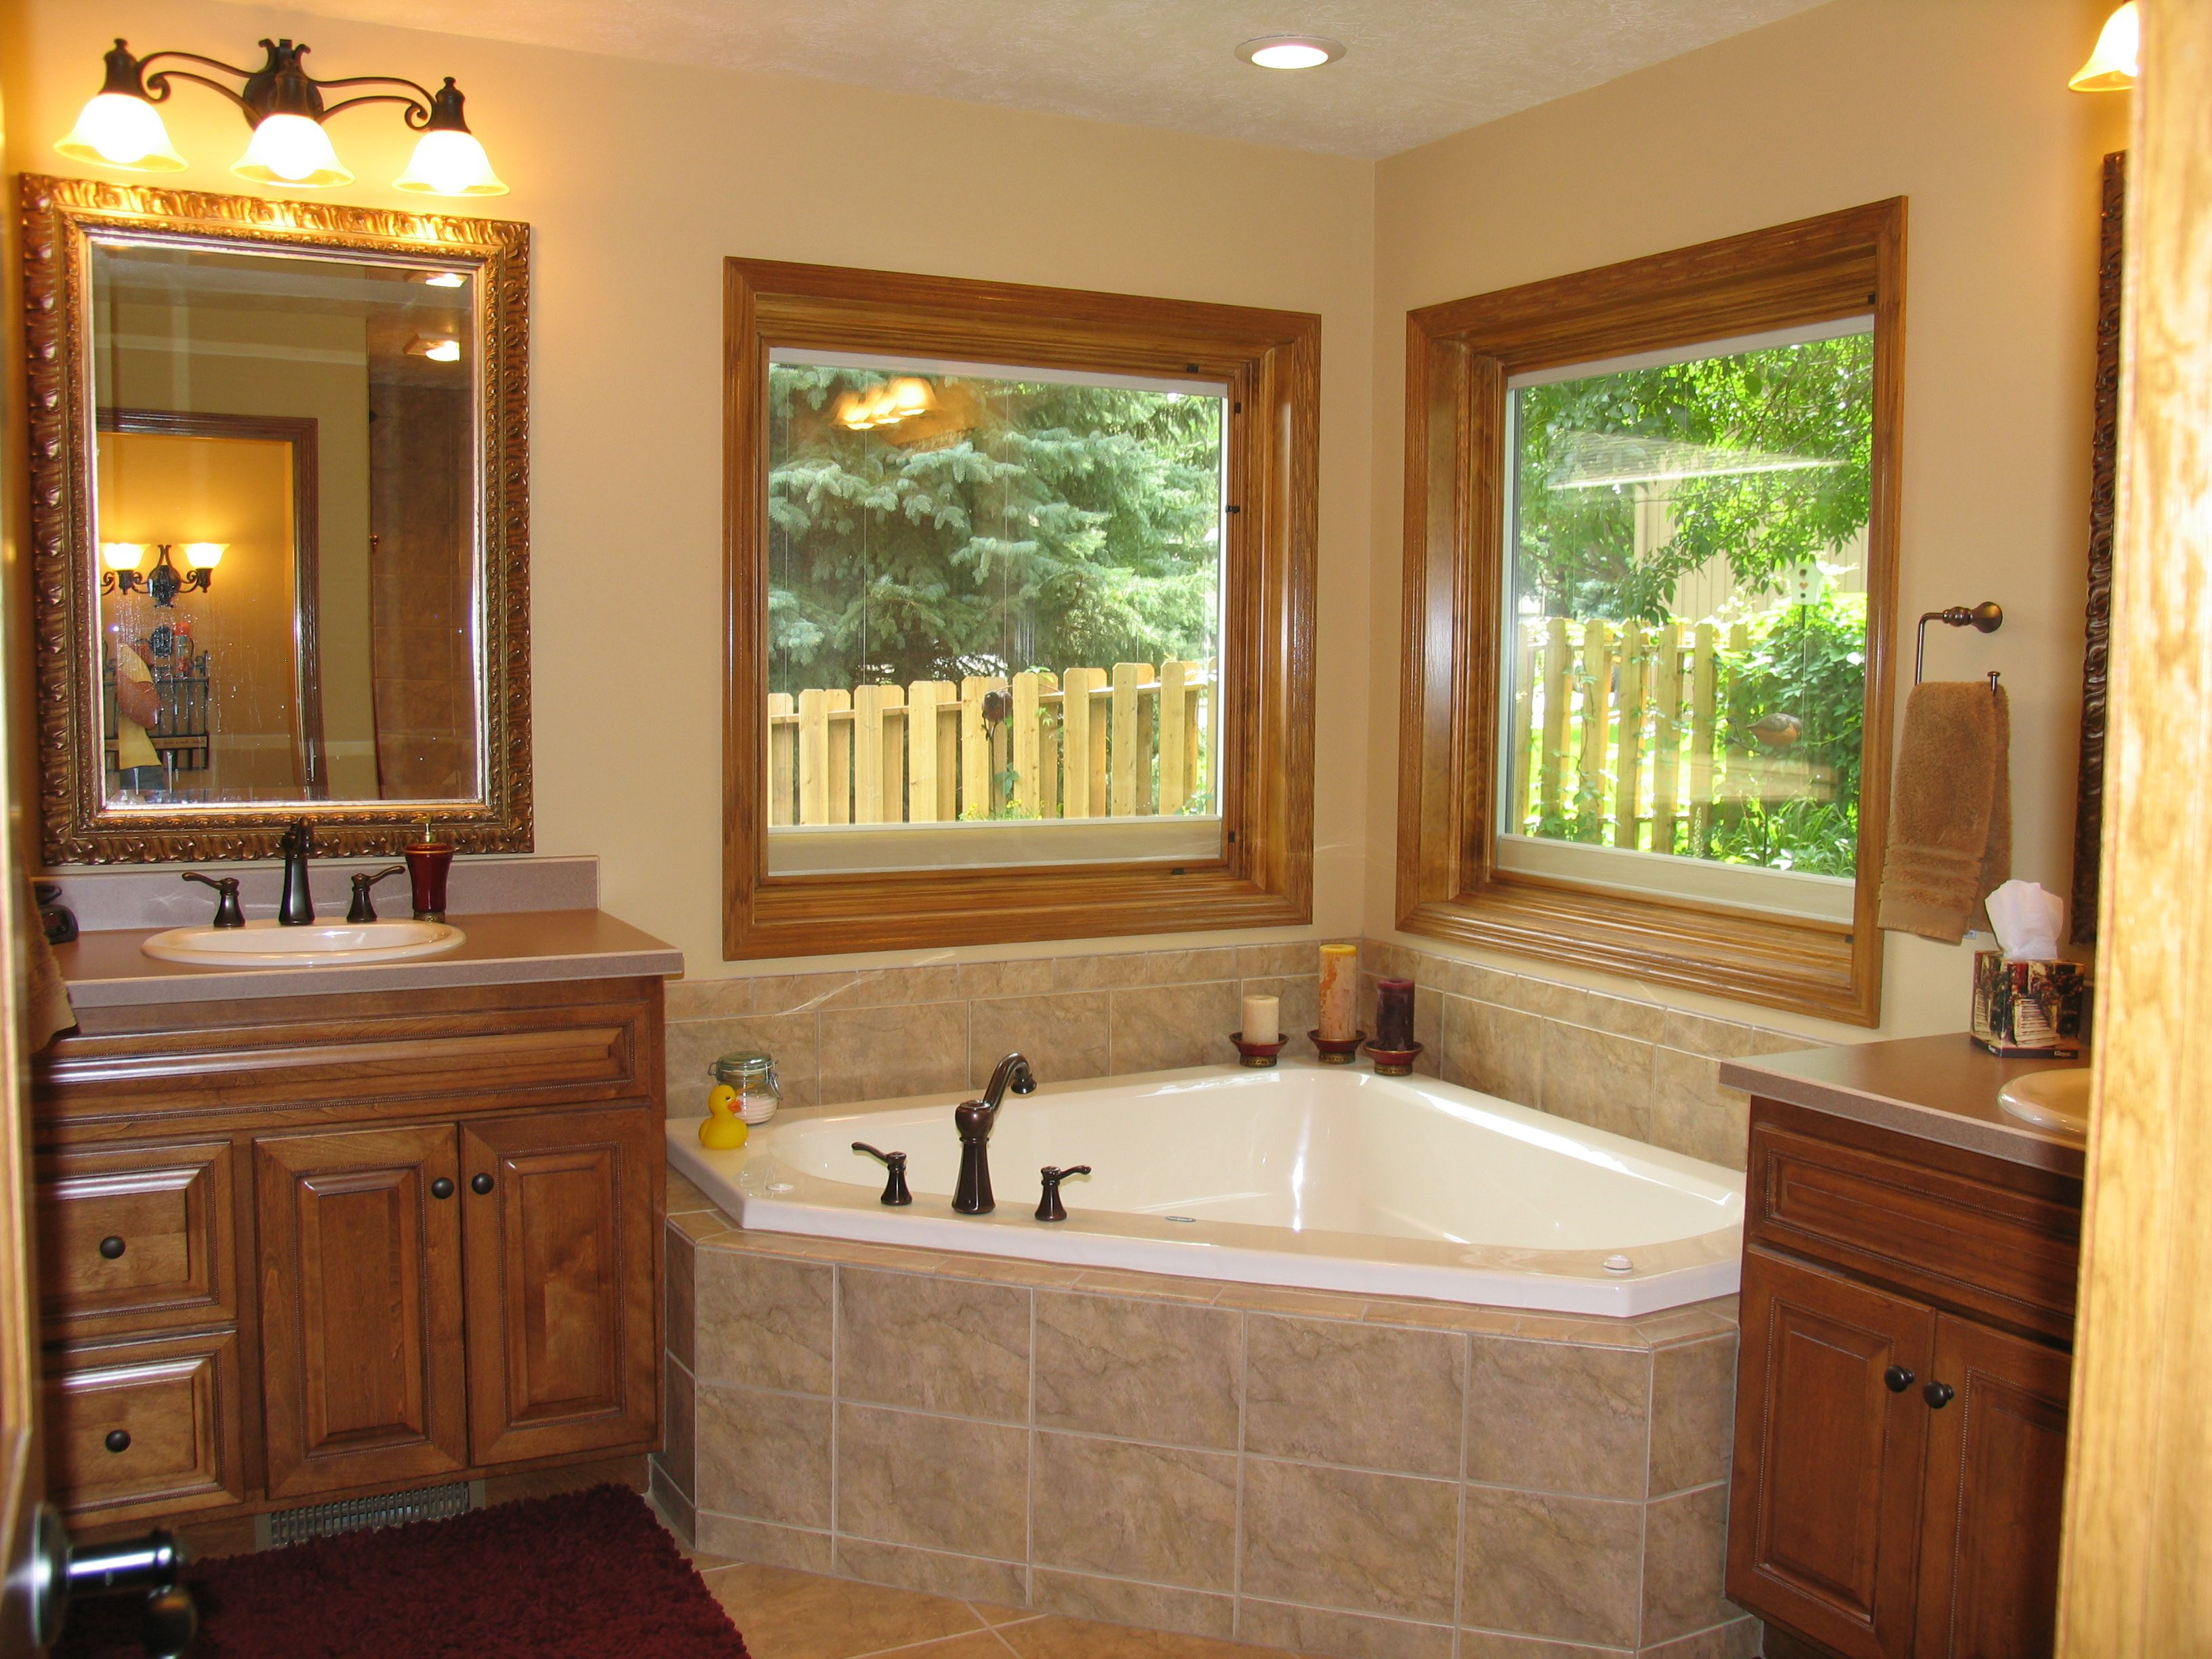 Emaux Pour Salle De Bain ~ 2 story kitchen master suite home additions on time on budget